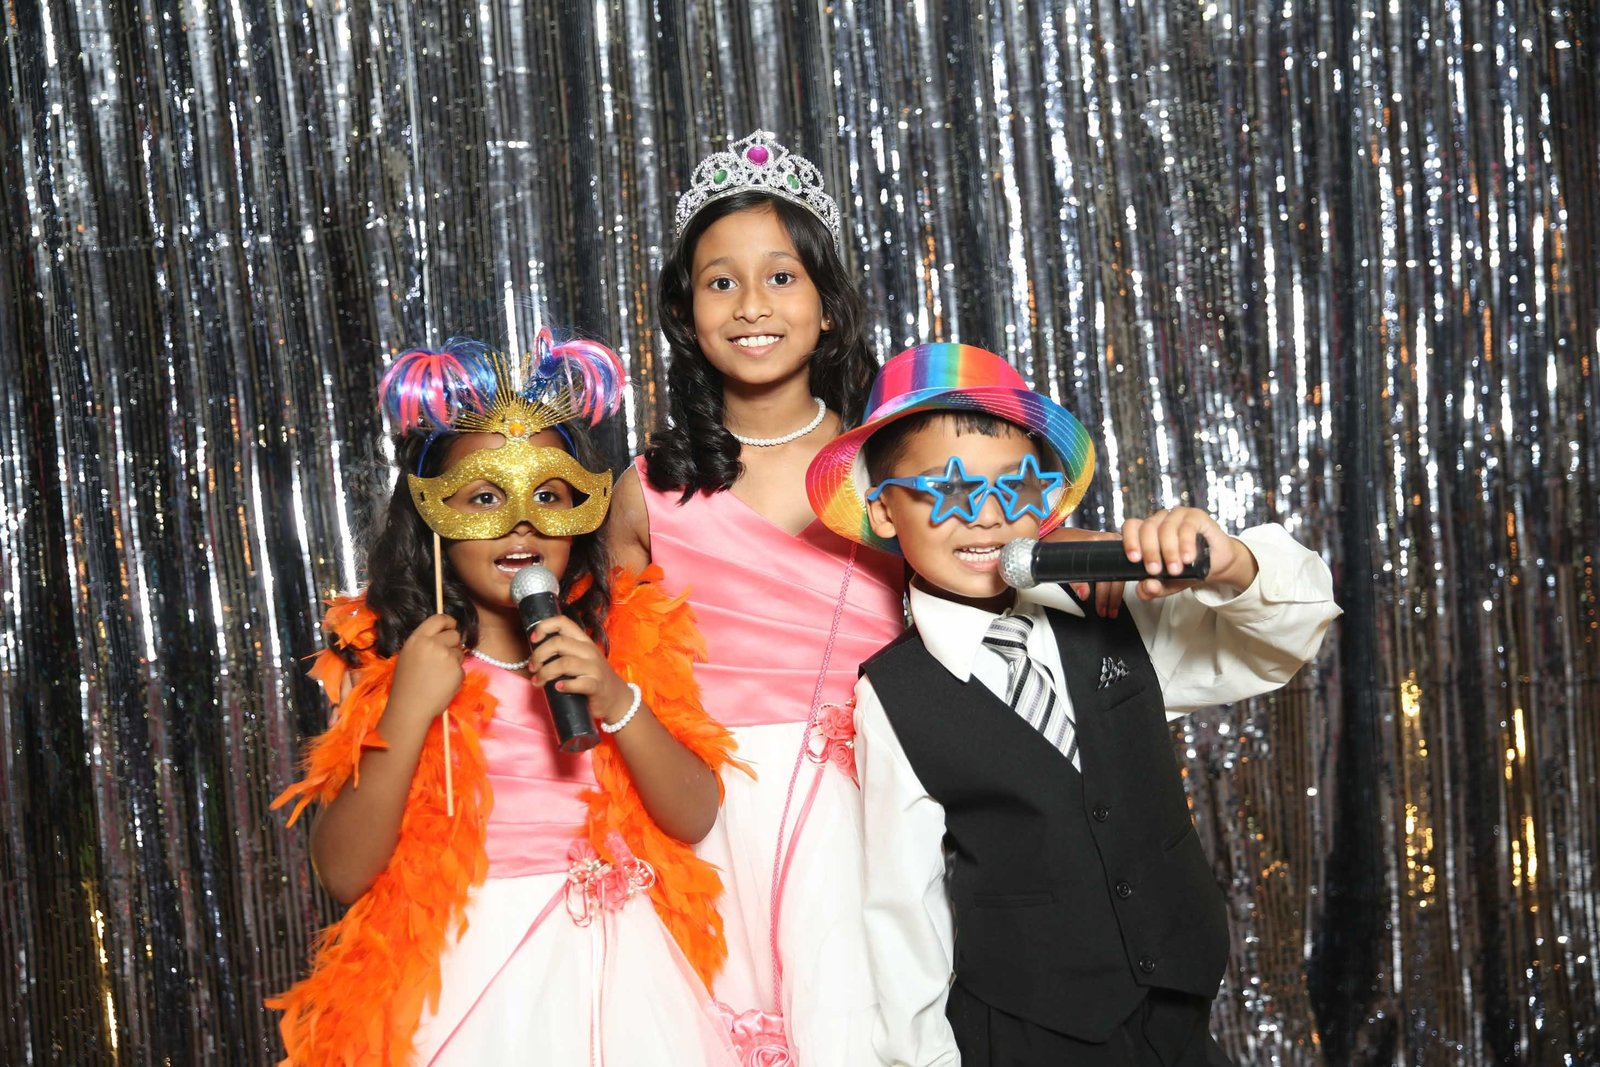 Children wearing props in photobooth. Photo by Ross Photography, Trinidad, W.I..